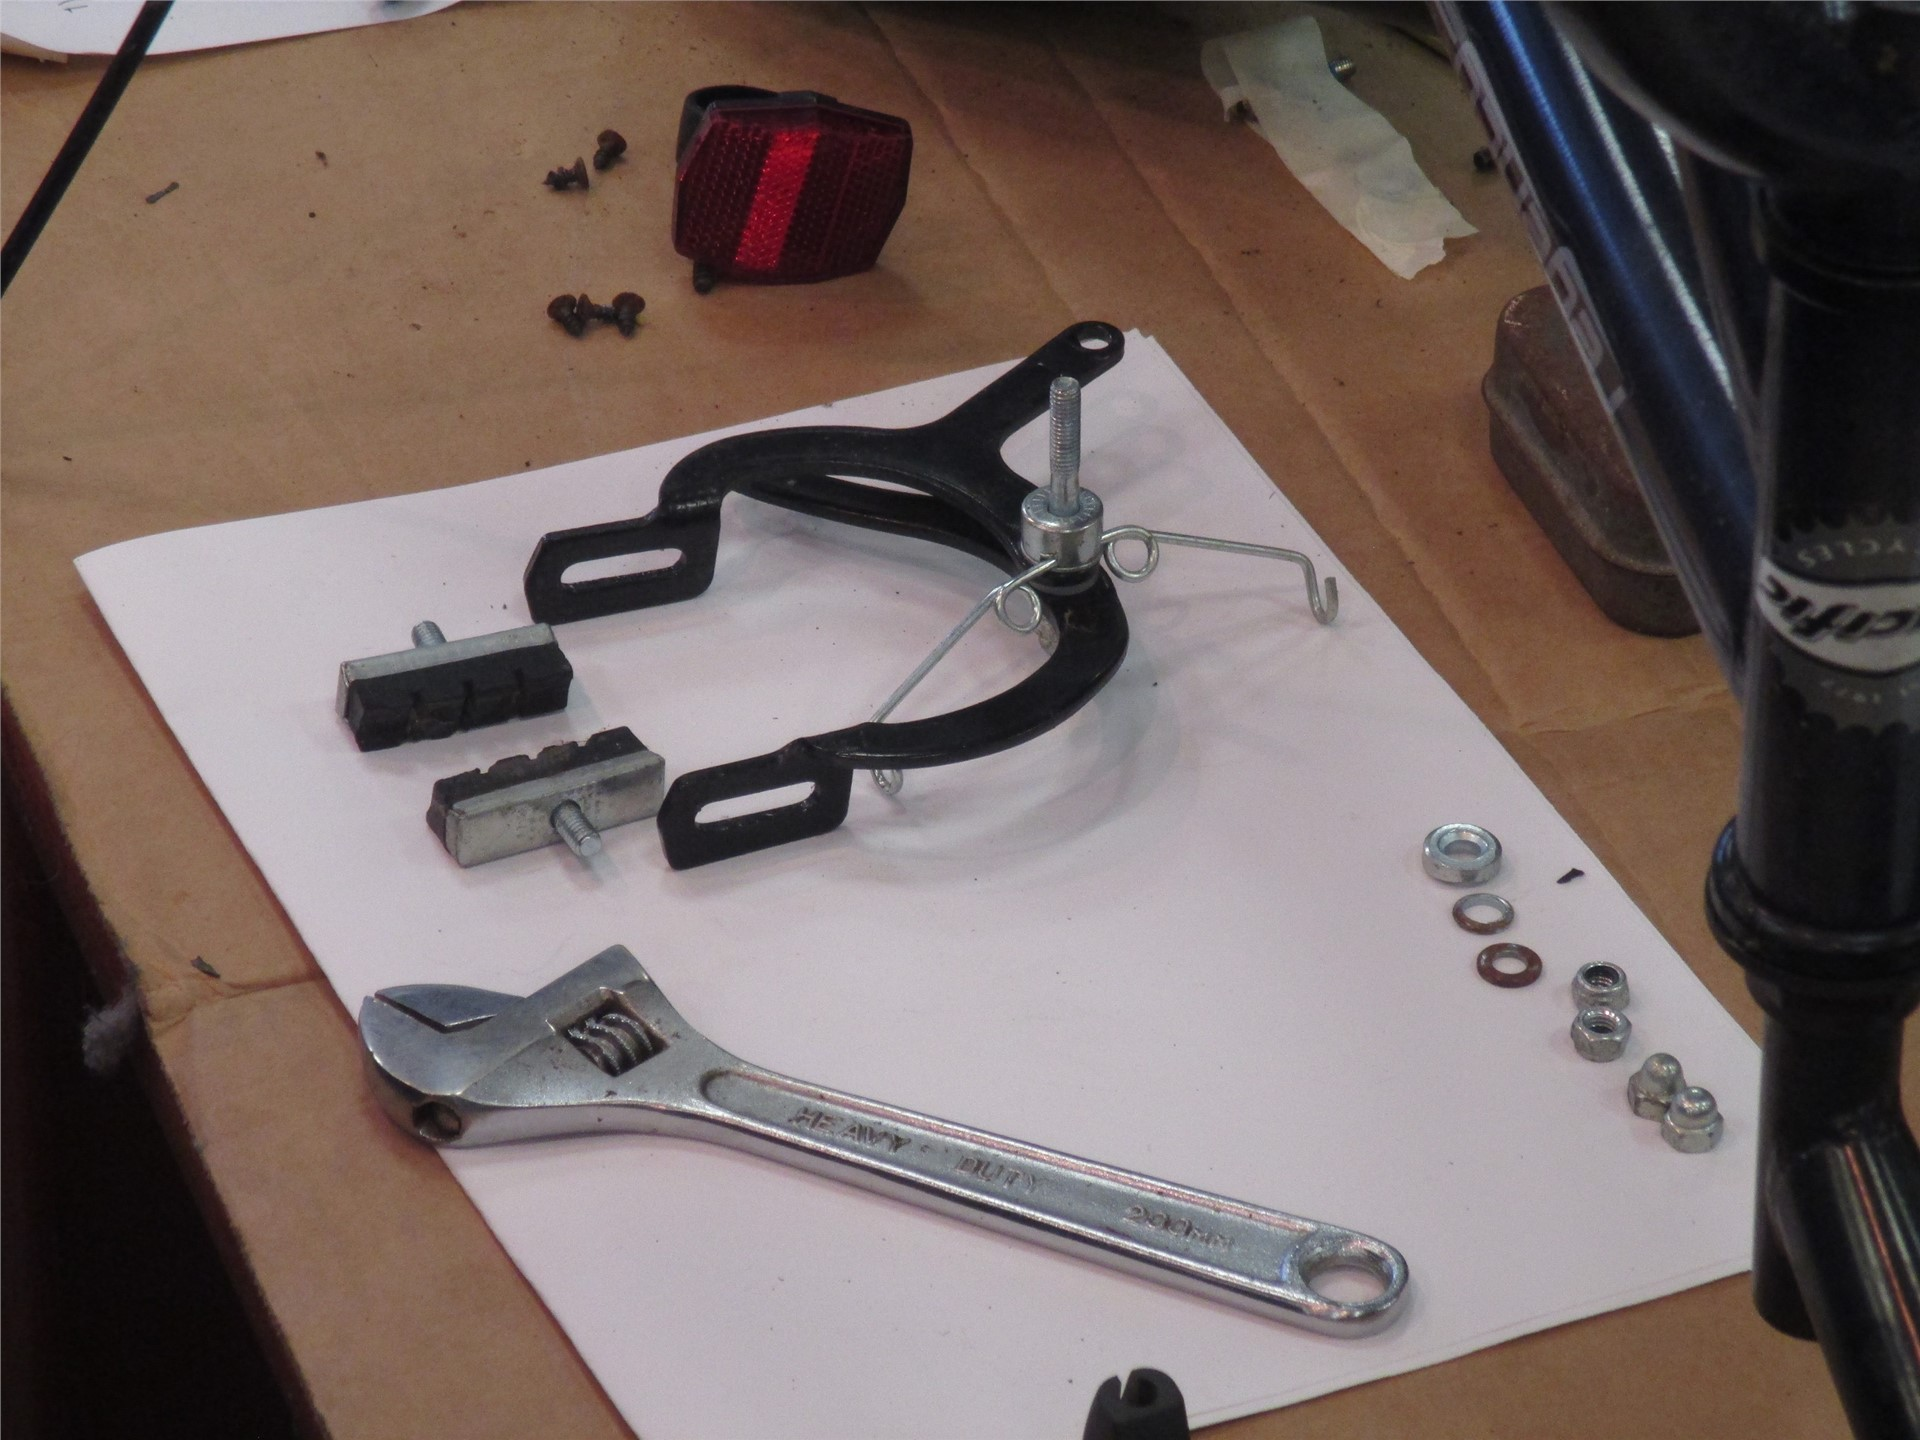 Image of bicycle parts and tools.